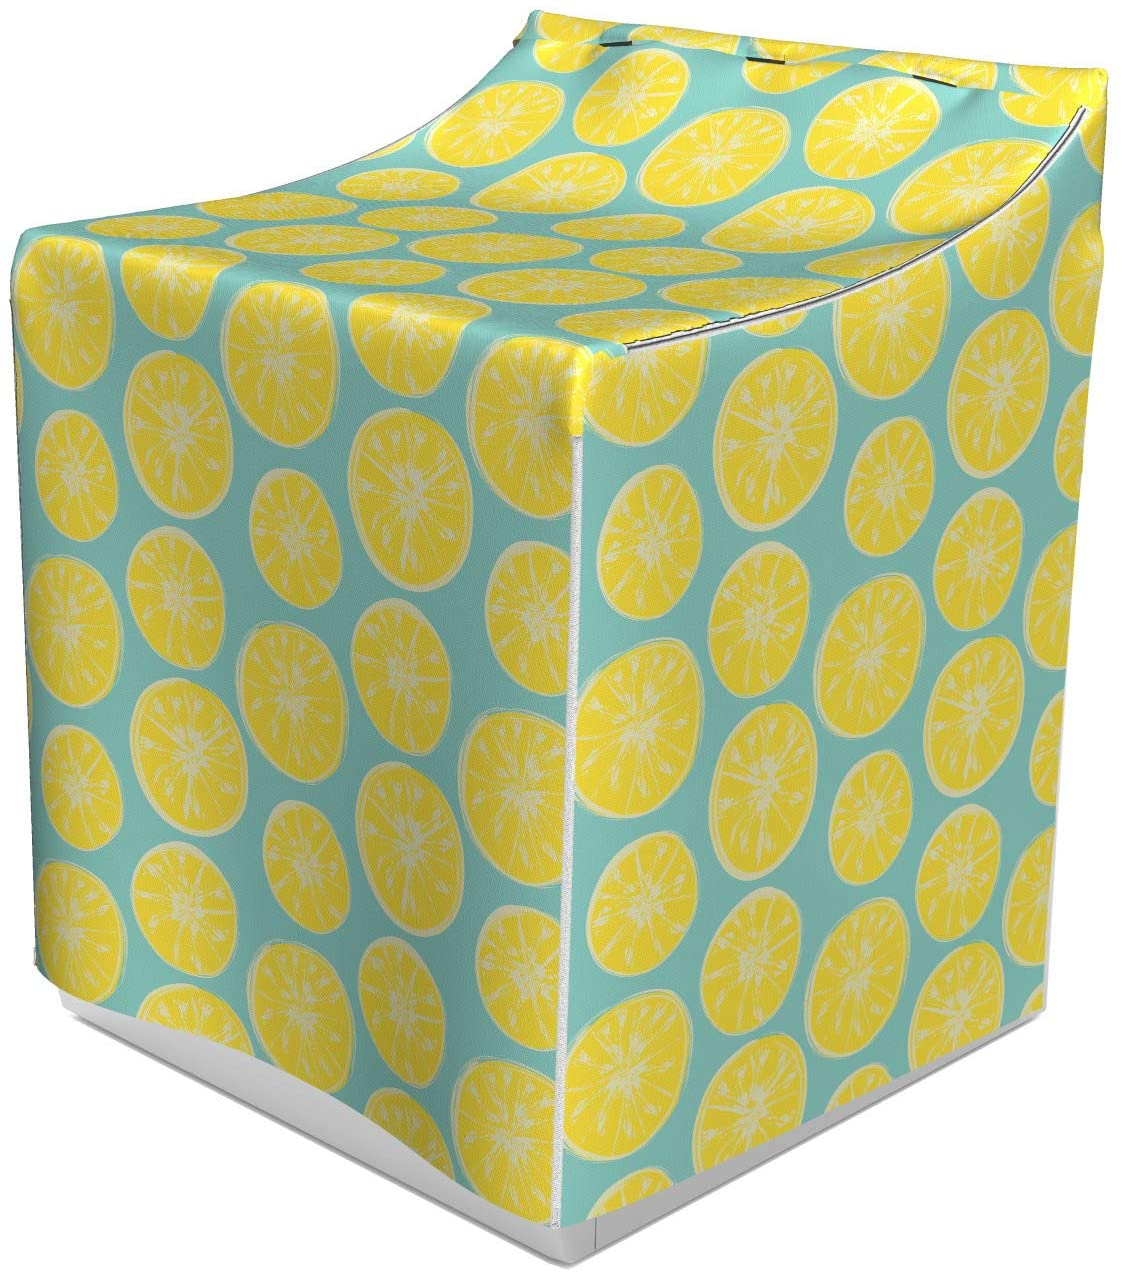 Lunarable Yellow and Blue Washer Cover, Citrus Pattern in Hand Drawn Style Watercolor Grunge Lemon Slices, Dust and Dirt Free Decorative Print, 29